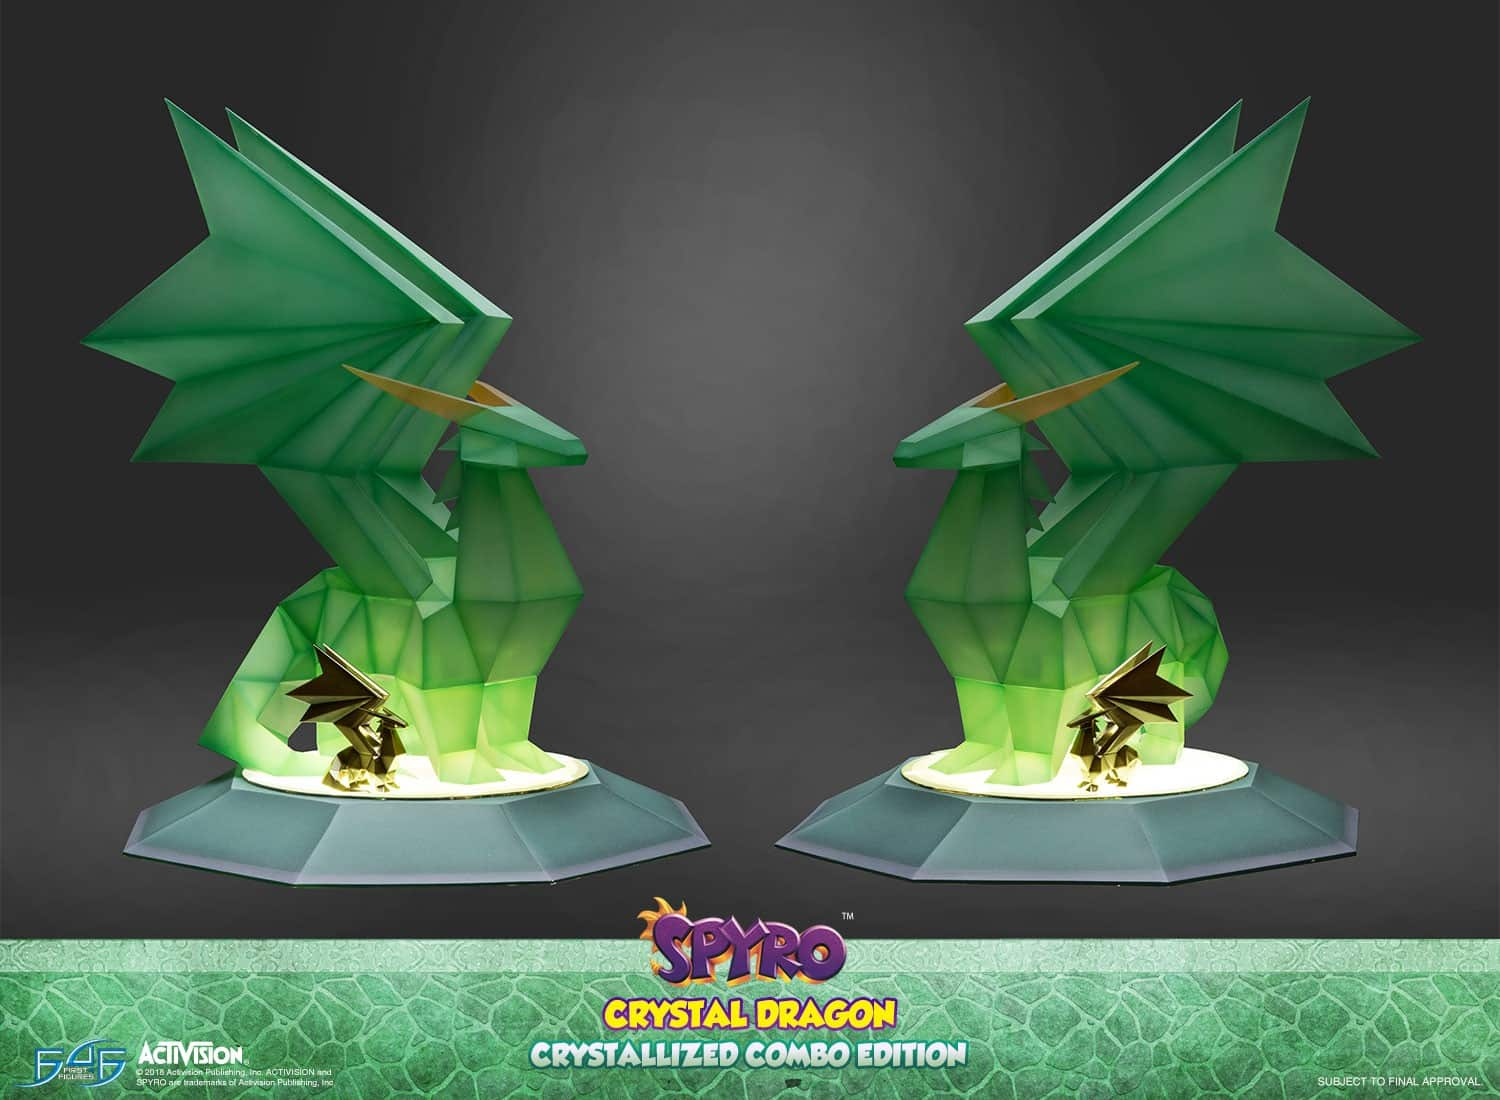 Spyro CRYSTAL DRAGON Crystallized Combo Edition Statue Resin Activision First 4 Figures F4F